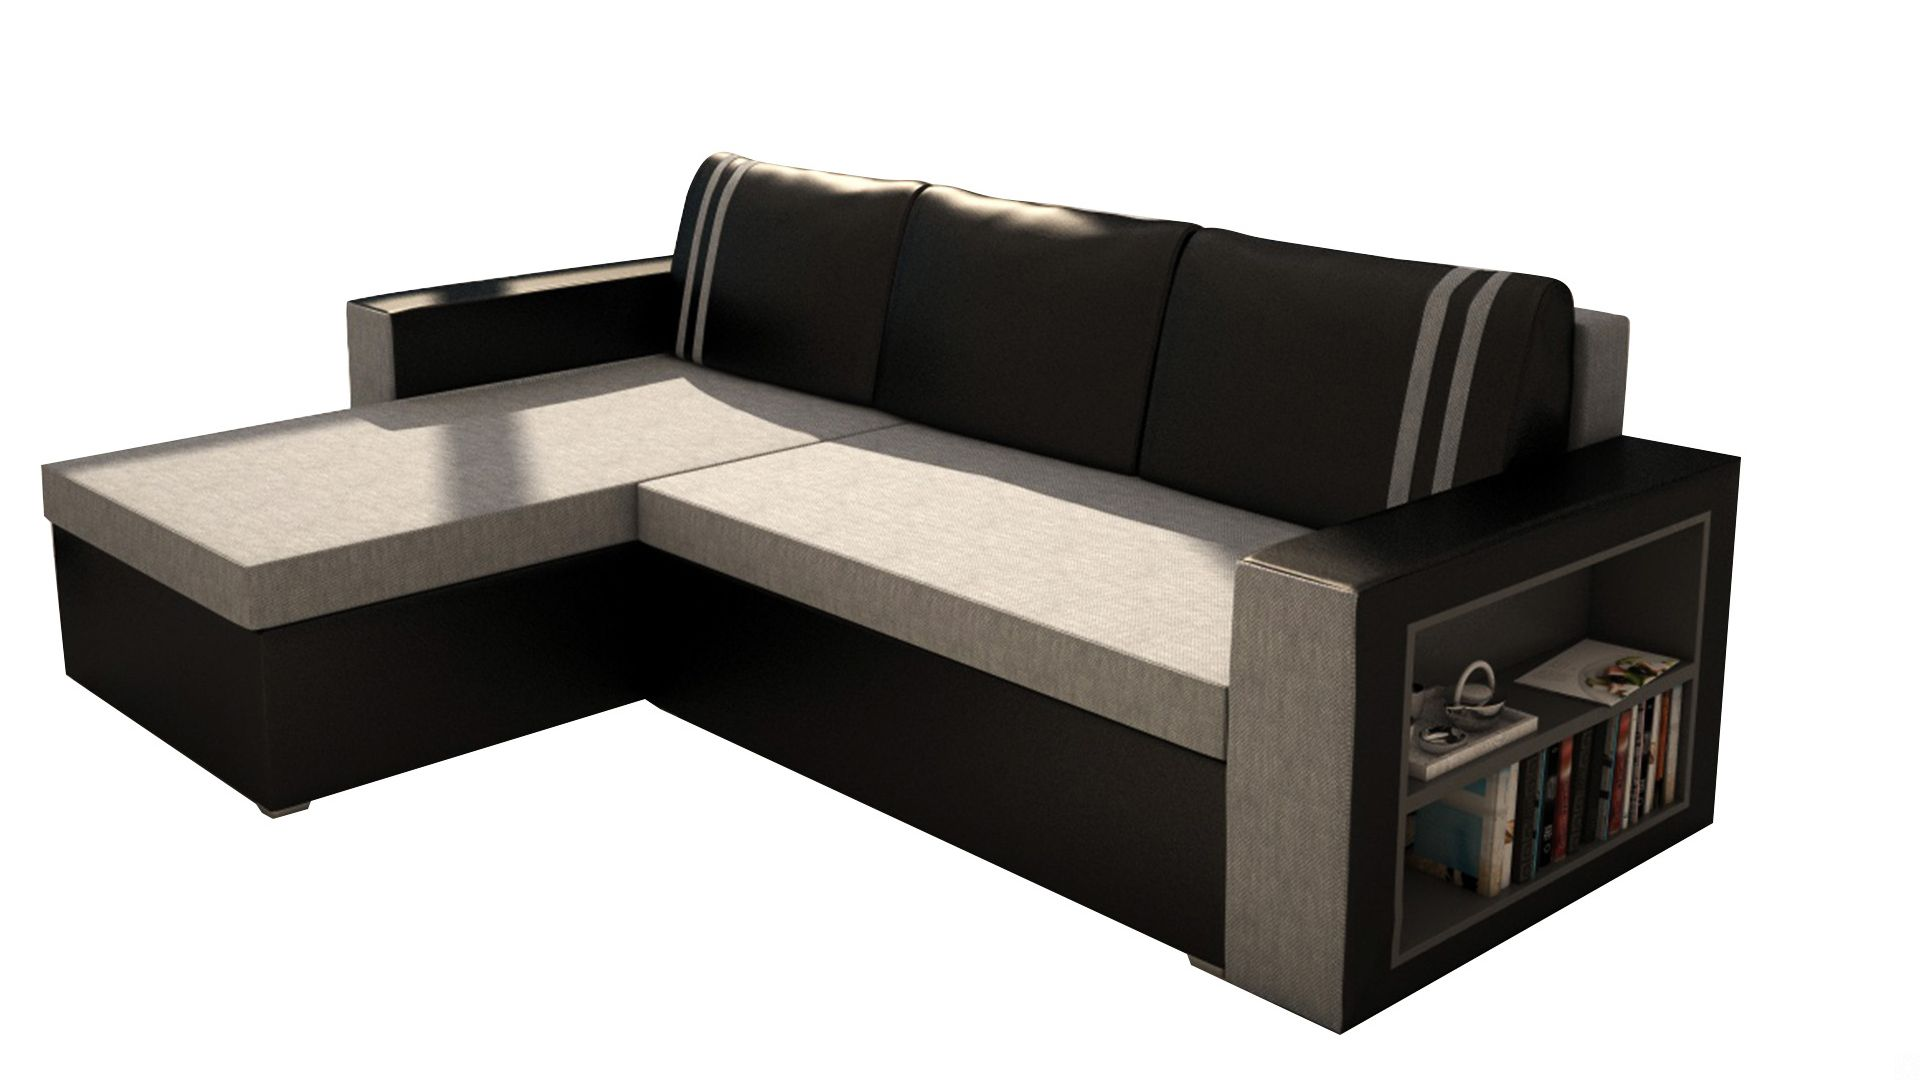 Moderne Couchgarnituren Sofa Couch Ecksofa Eckcouch Schlaffunktion Bettkasten